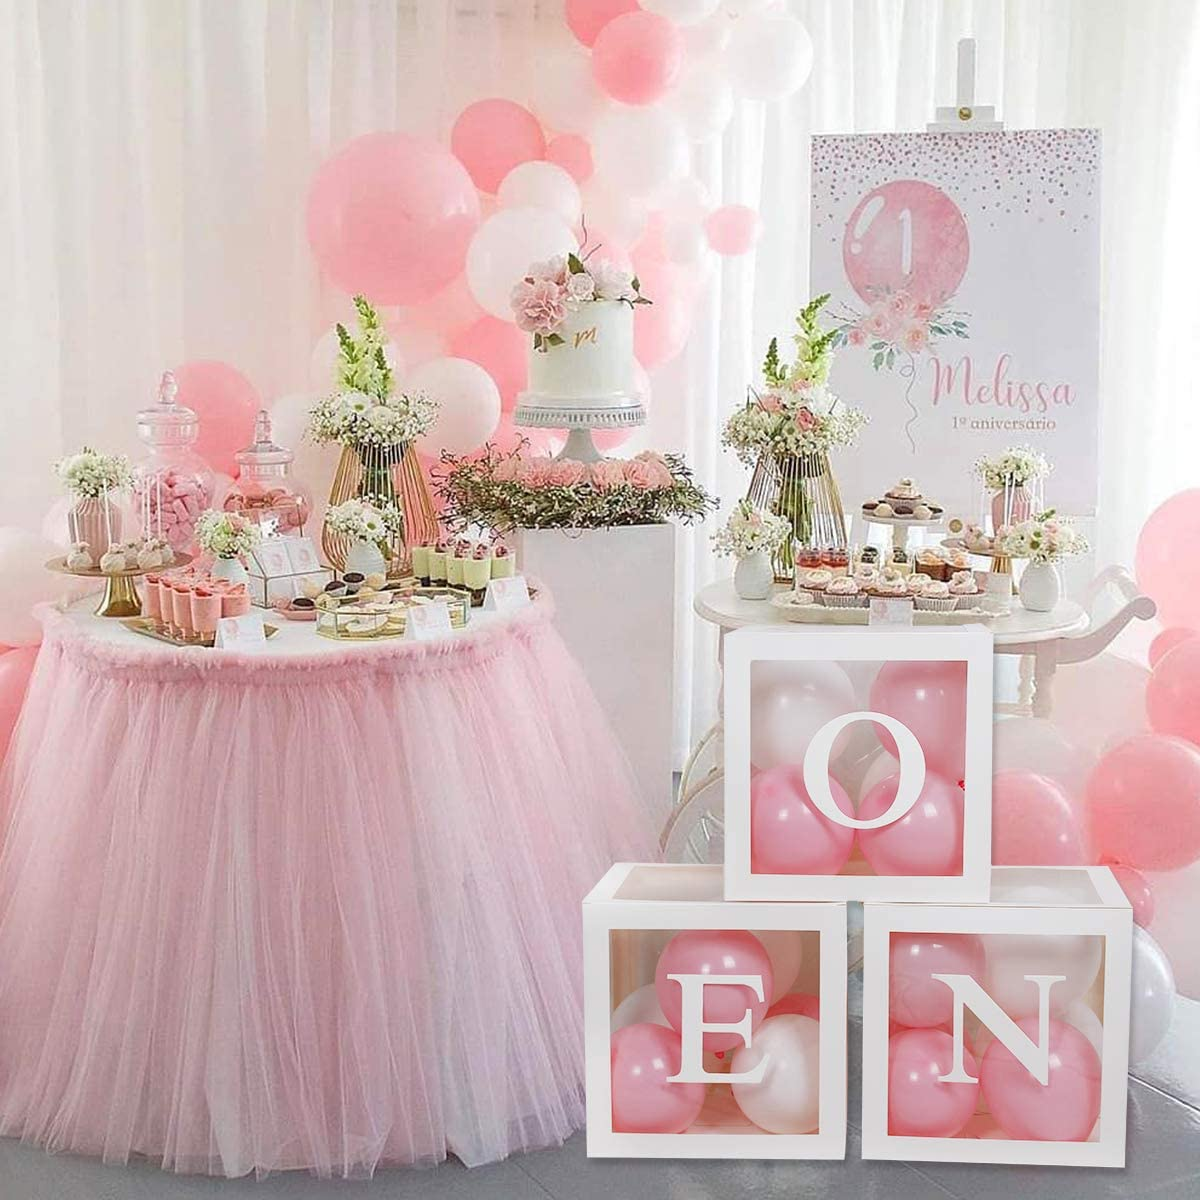 First Birthday Balloon Boxes for Party Decorations,1st Birthday Balloon Blocks Decorations with ONE Letter for Boy Girl Baby Shower,Photo Shoot Prop,Table Centerpiece